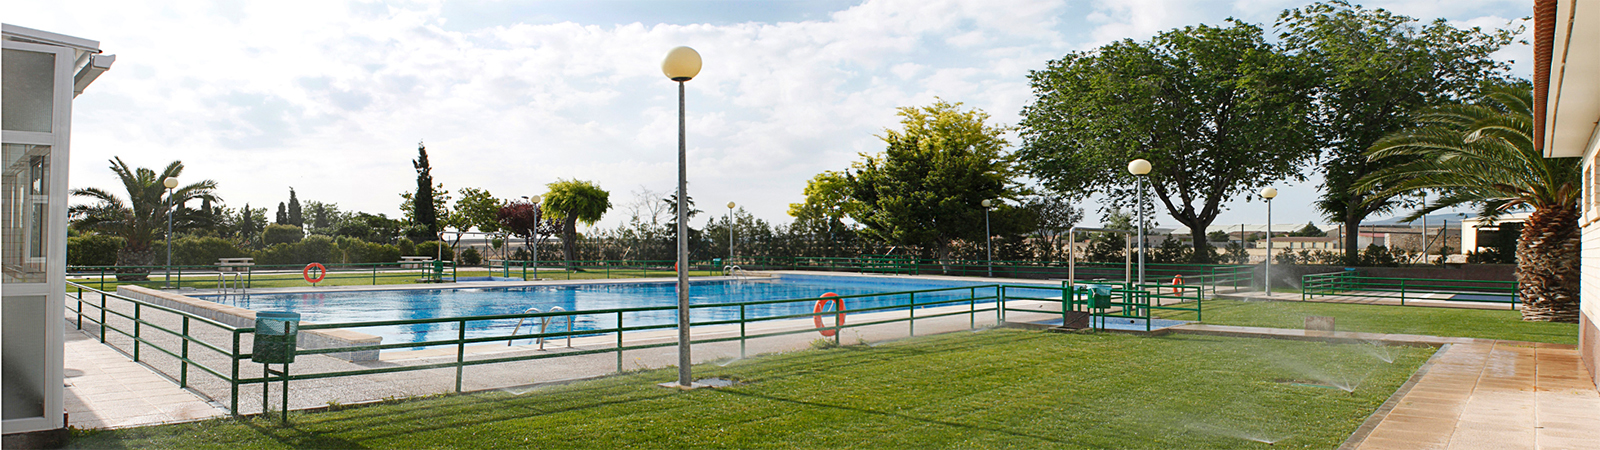 Piscina municipal villa de lecera for Piscina municipal zaragoza